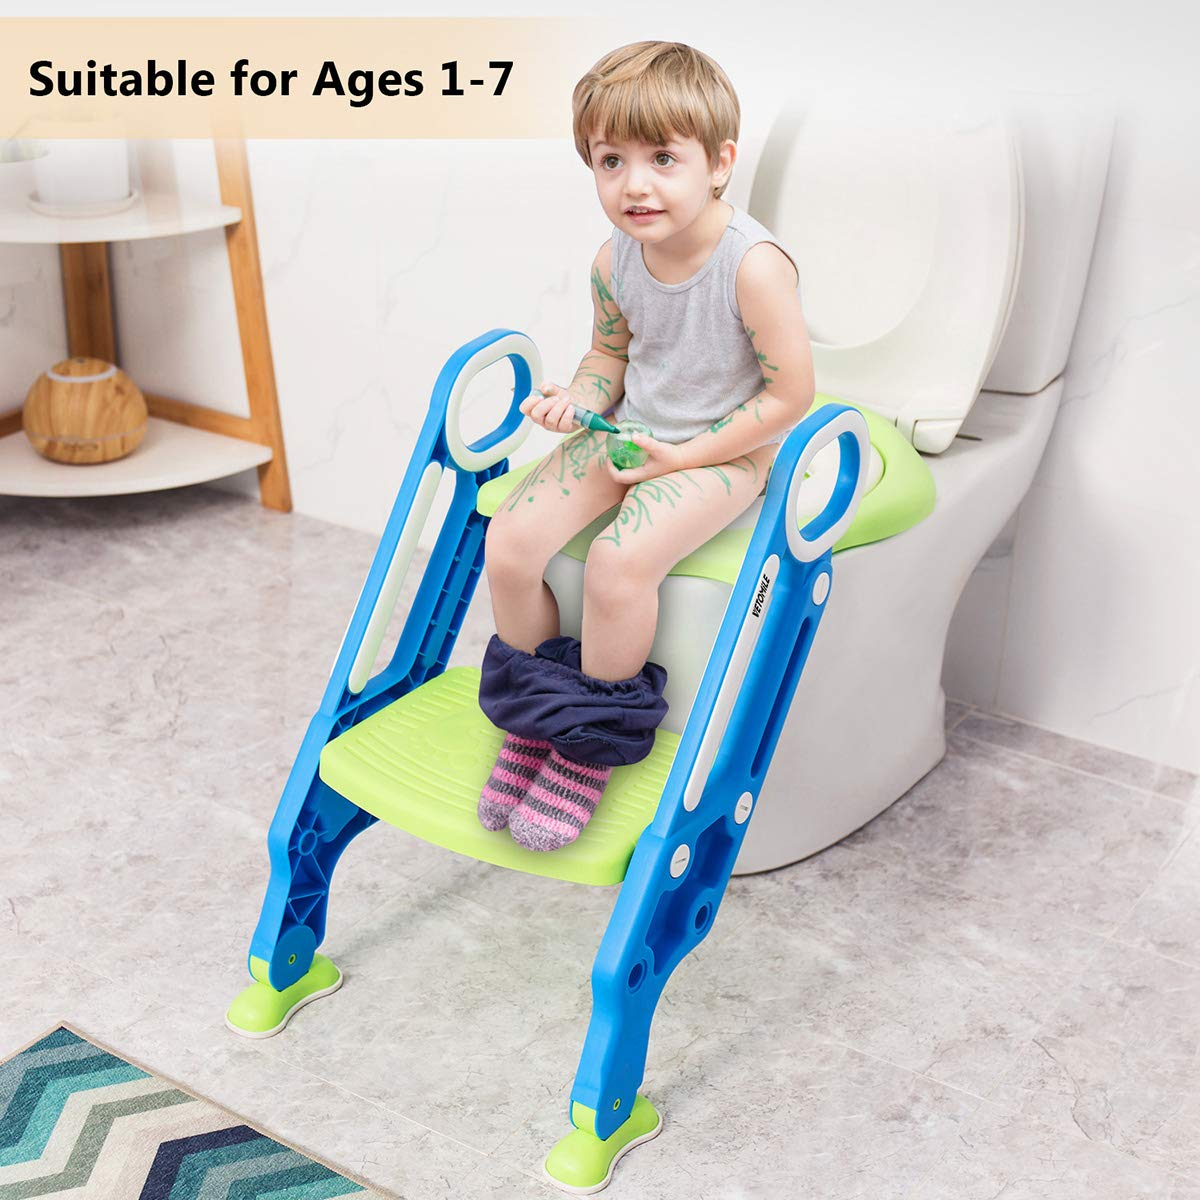 VETOMILE Baby Potty Toilet Trainer Seat for Children Kids Toddles with Adjustable Sturdy Non-Slip Step Stool Ladder and 2 PU Leather Replaceable Soft Padding Suitable for O V U Shaped-Toilets by VETOMILE (Image #3)